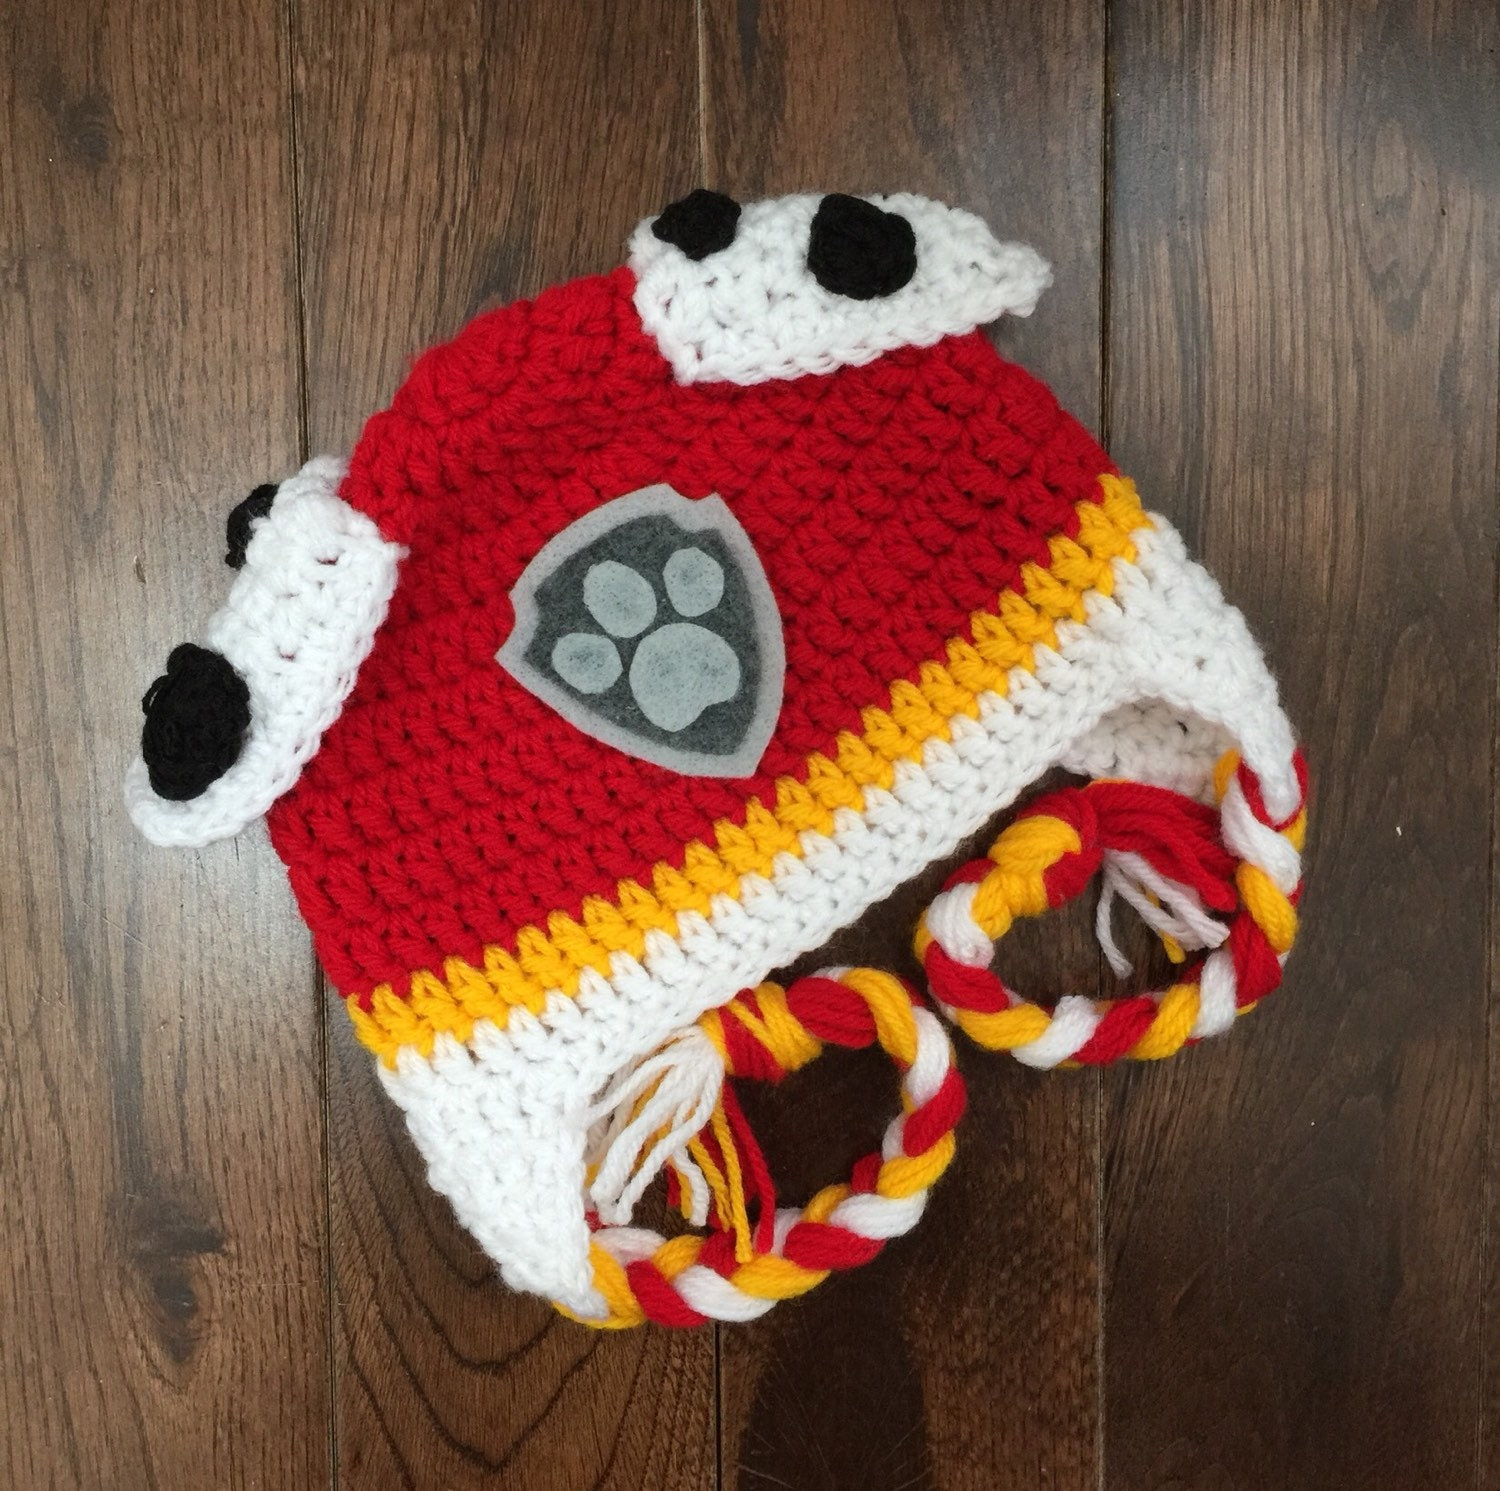 Crochet Hat Pattern Paw Patrol : Marshall Paw Patrol Crochet Character Hats Dog Hat Made to